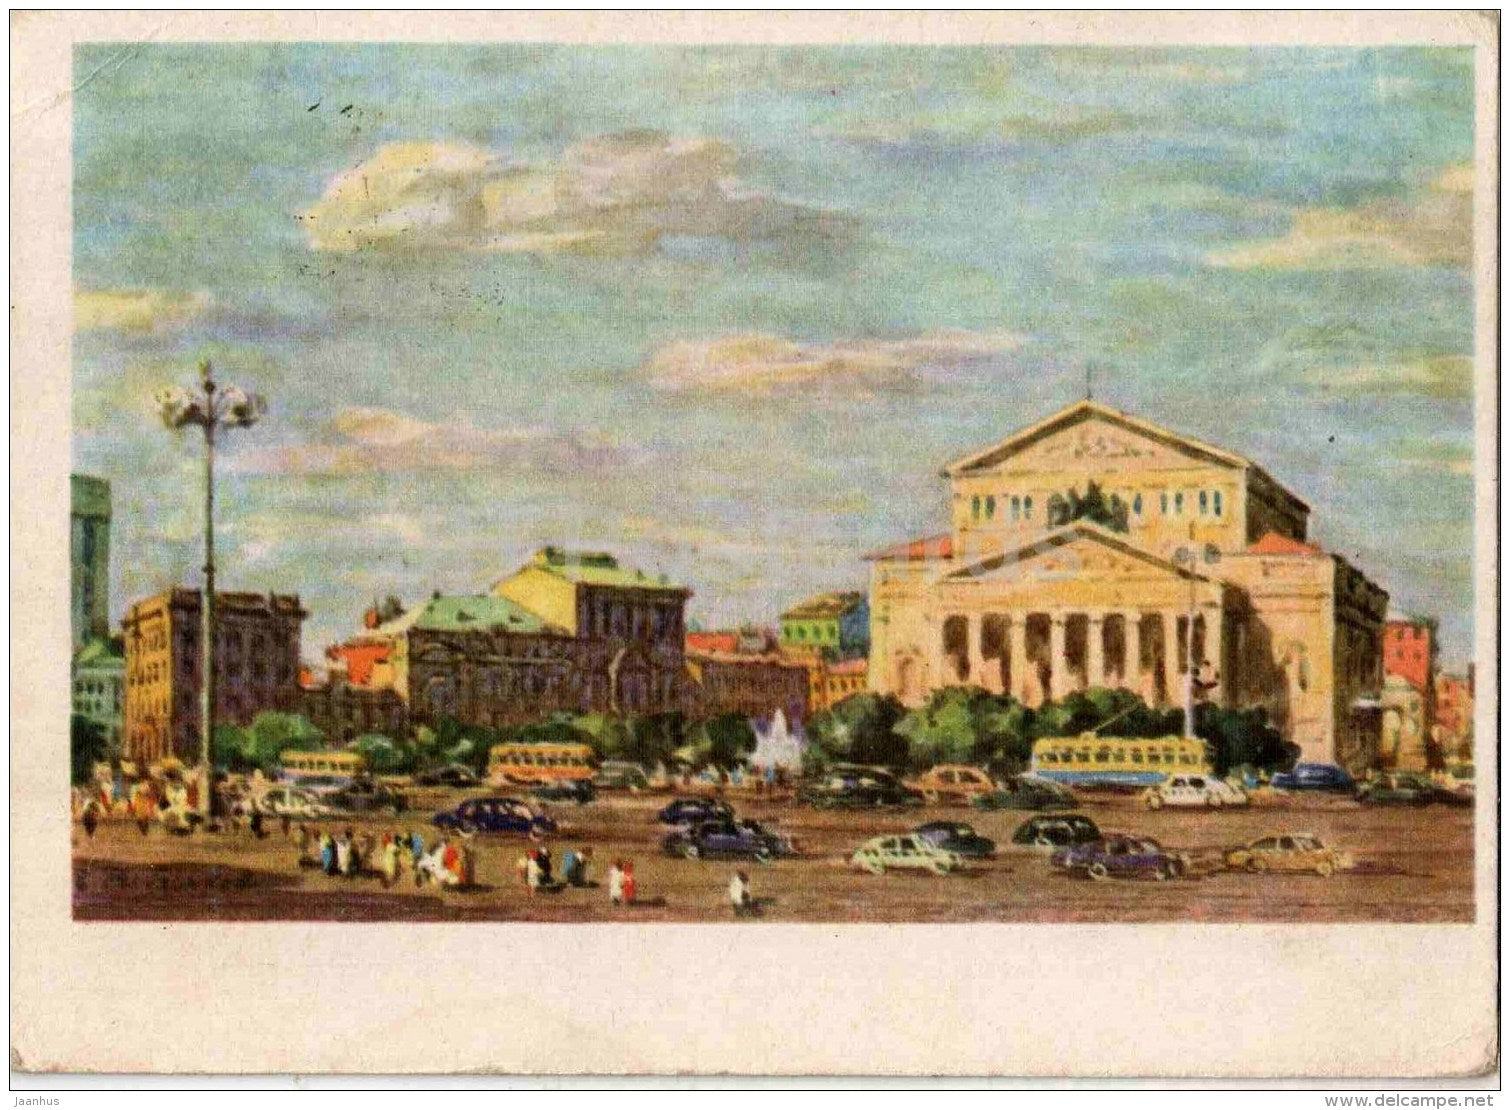 painting by B. Rybenko - View of the Grand Bolshoy Theatre - Moscow - Russian art - 1961 - Russia USSR - used - JH Postcards